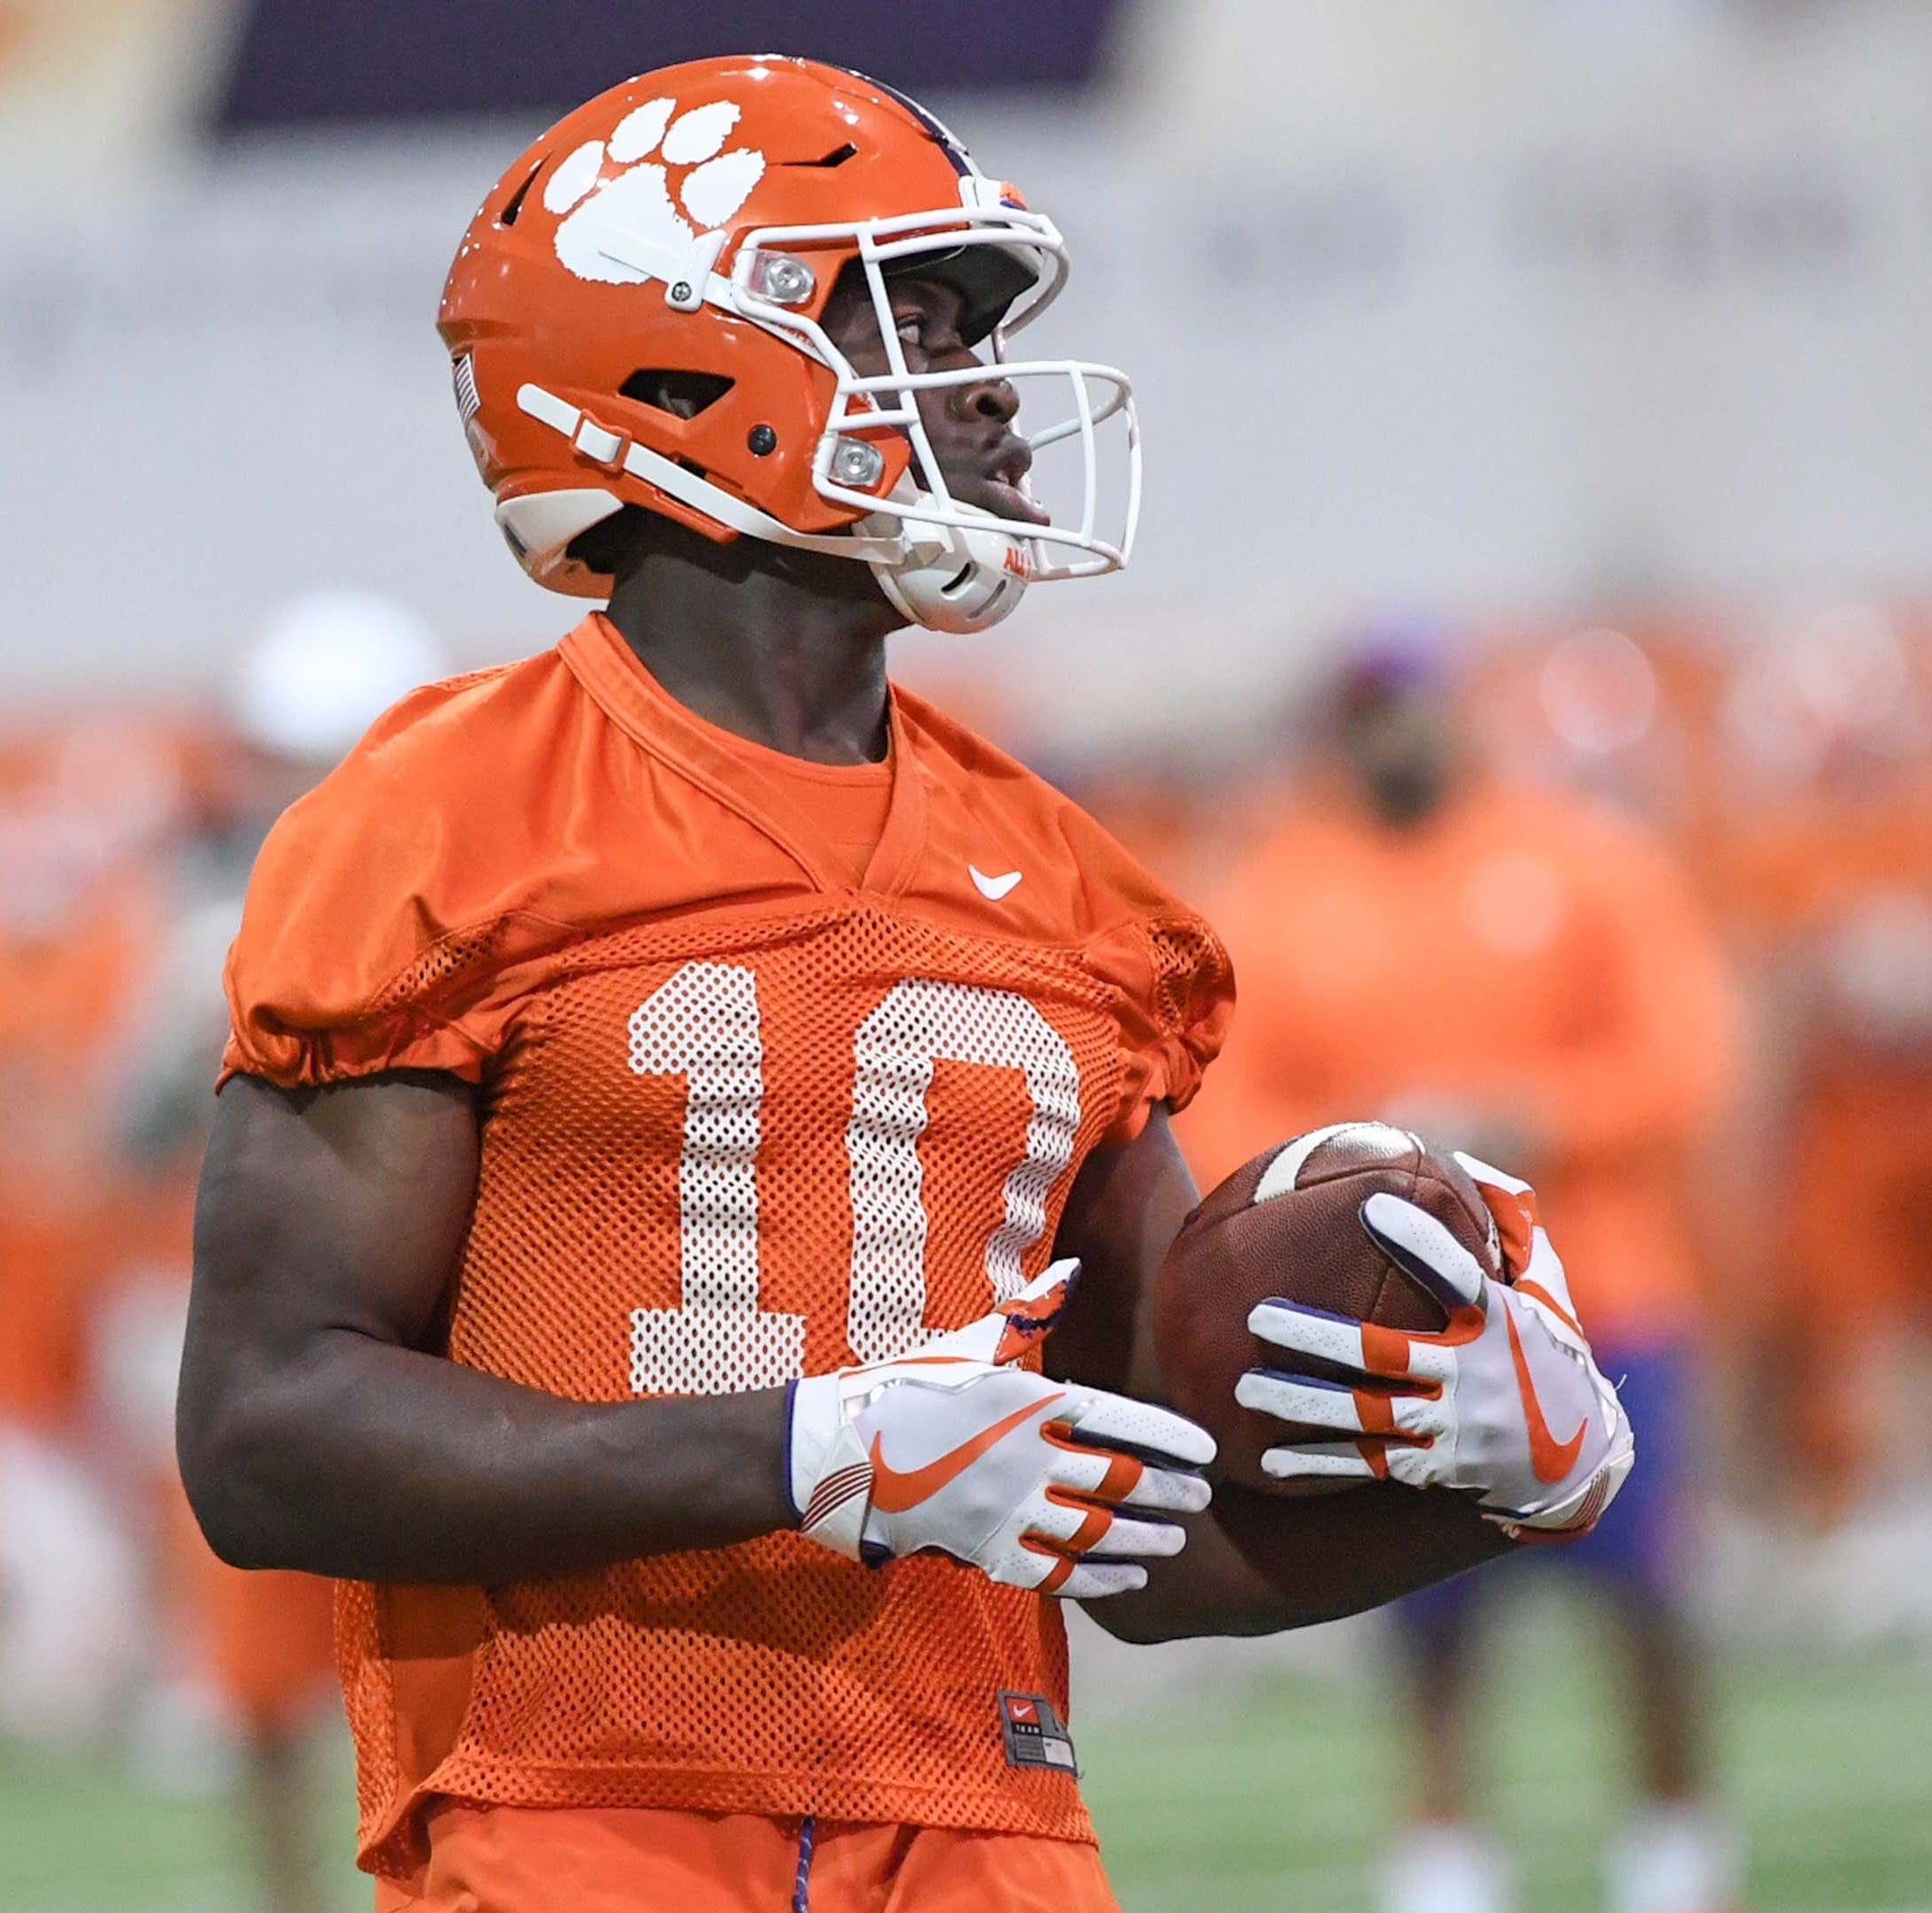 Clemson football Spring Game: Freshmen receivers Frank Ladson, Joseph Ngata have big days